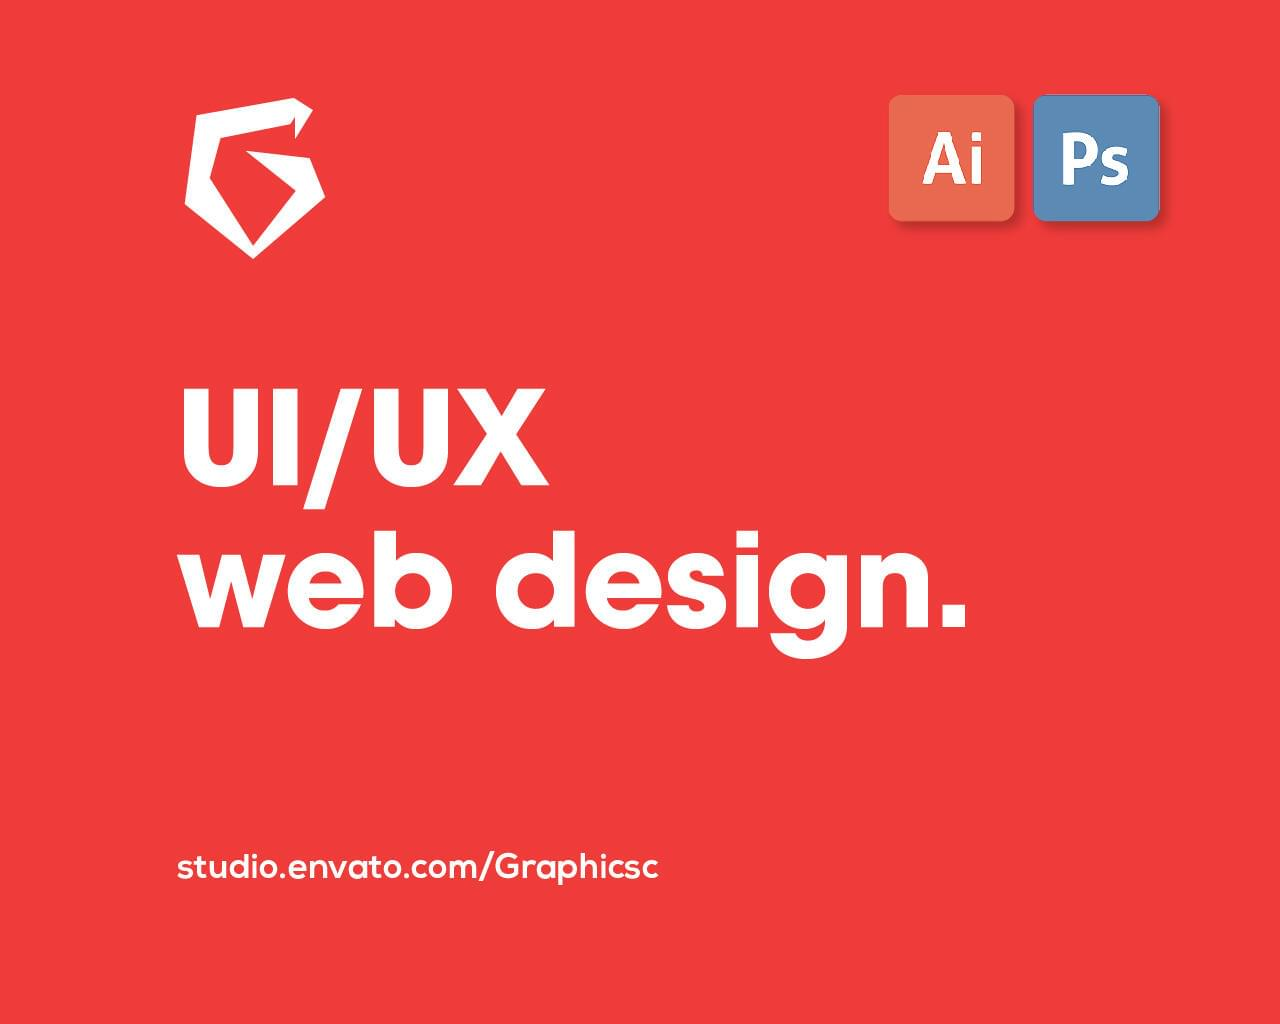 UI/UX Premium Web Application Design by Graphicsc - 117715